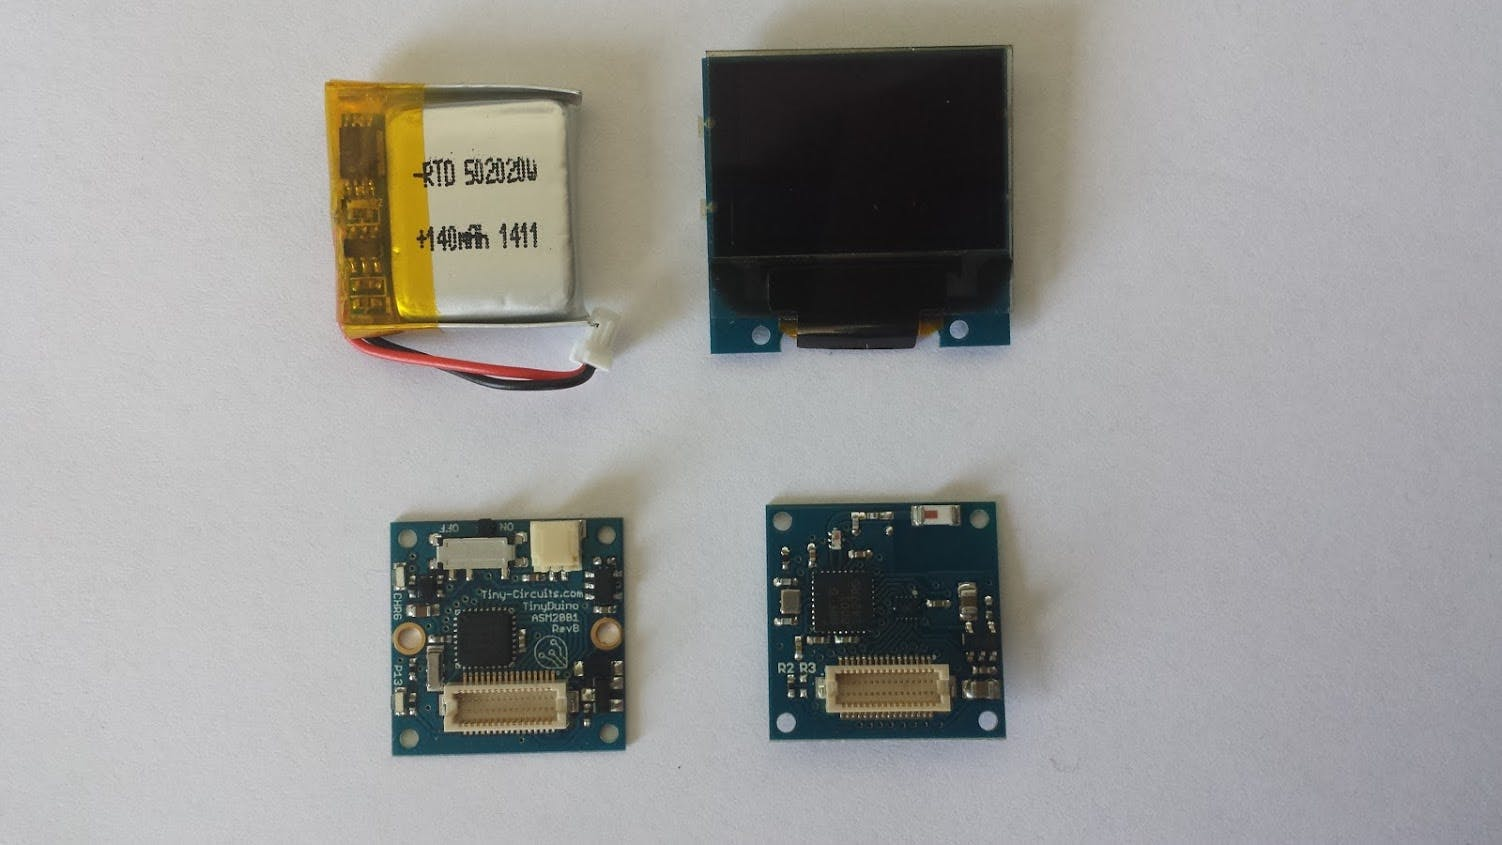 Boards used in final stack (USB used for programming and charging)